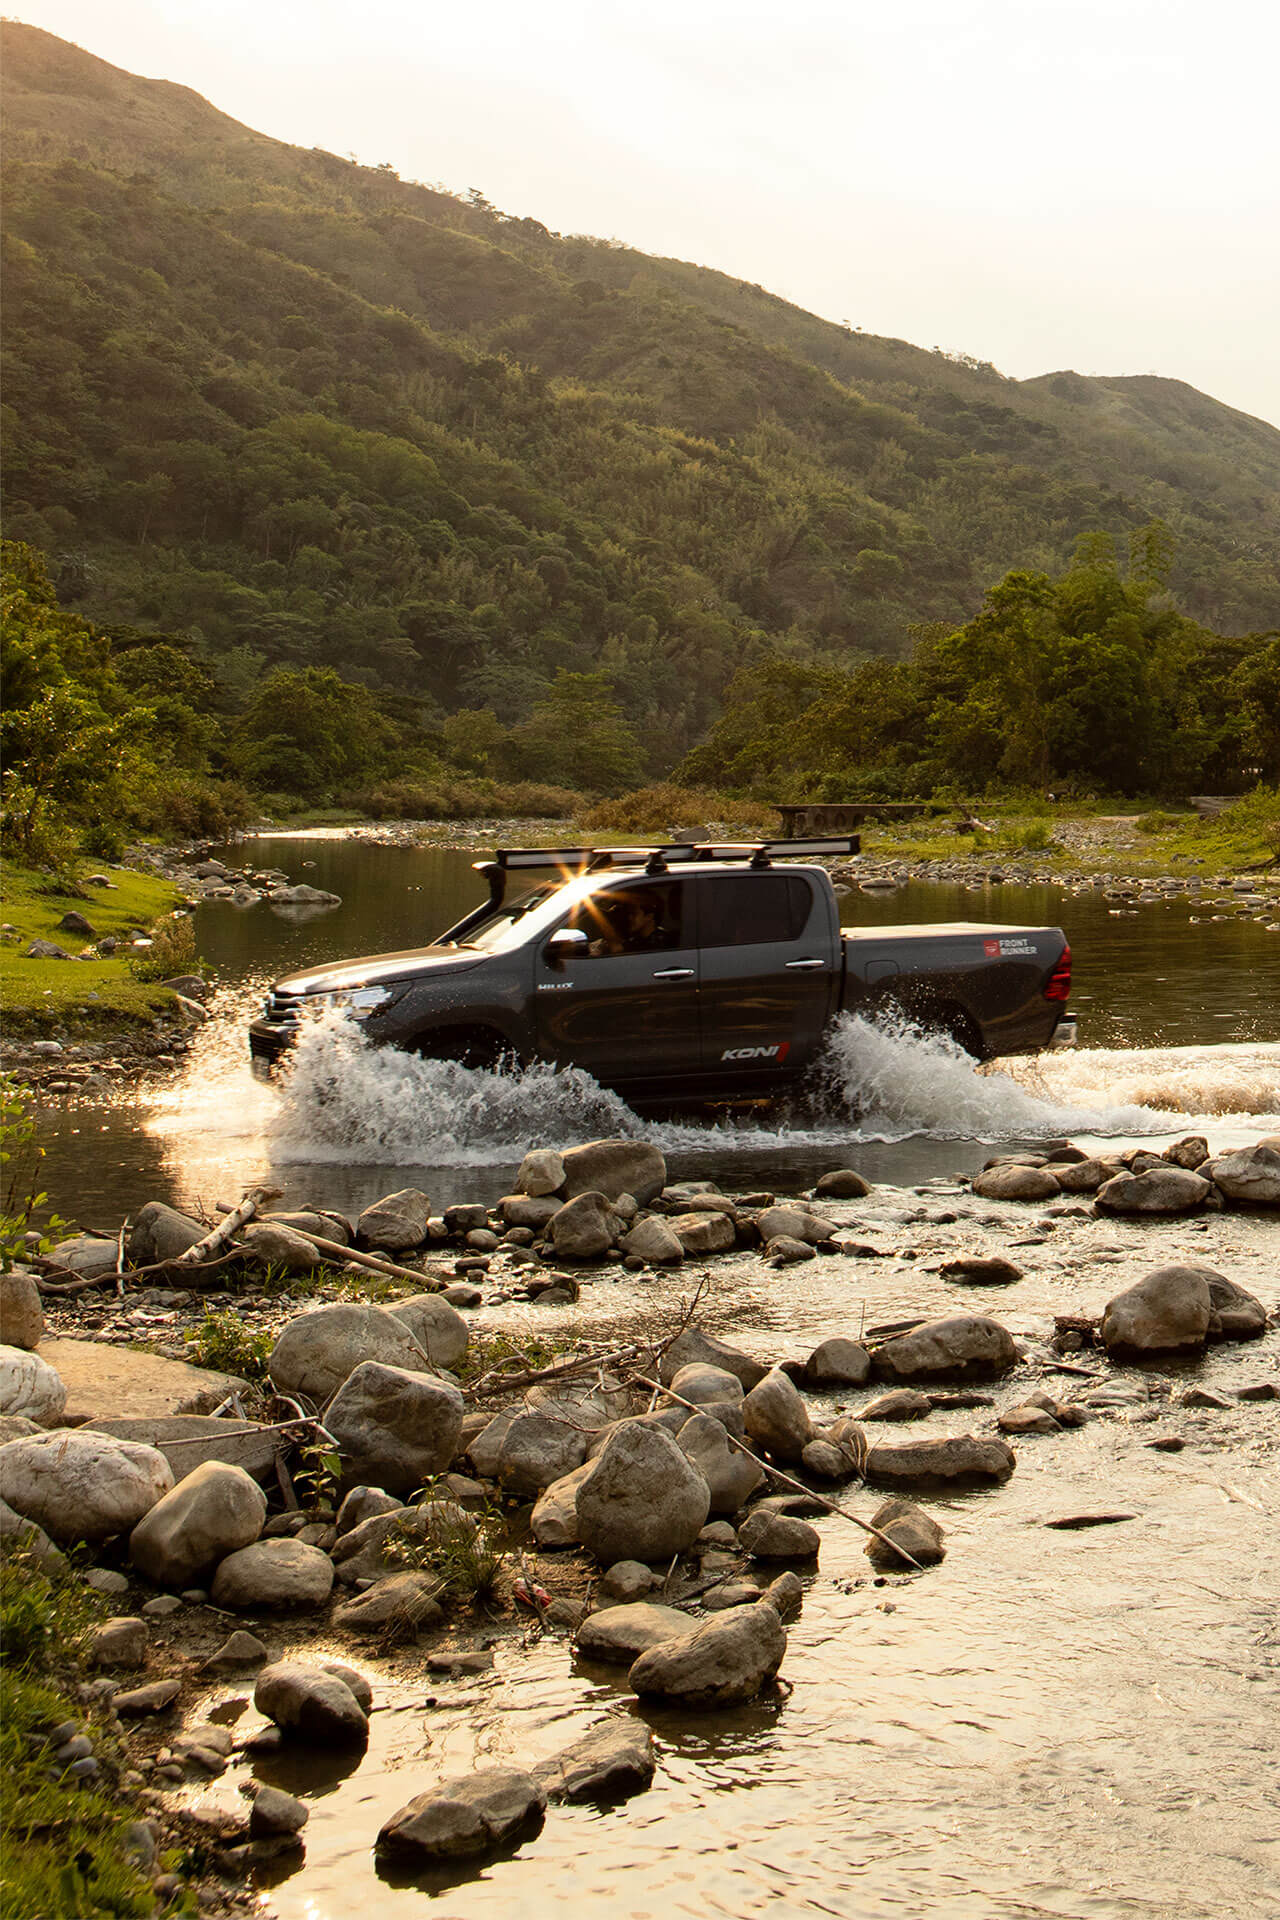 The Toyota Hilux wading through water in the sunset